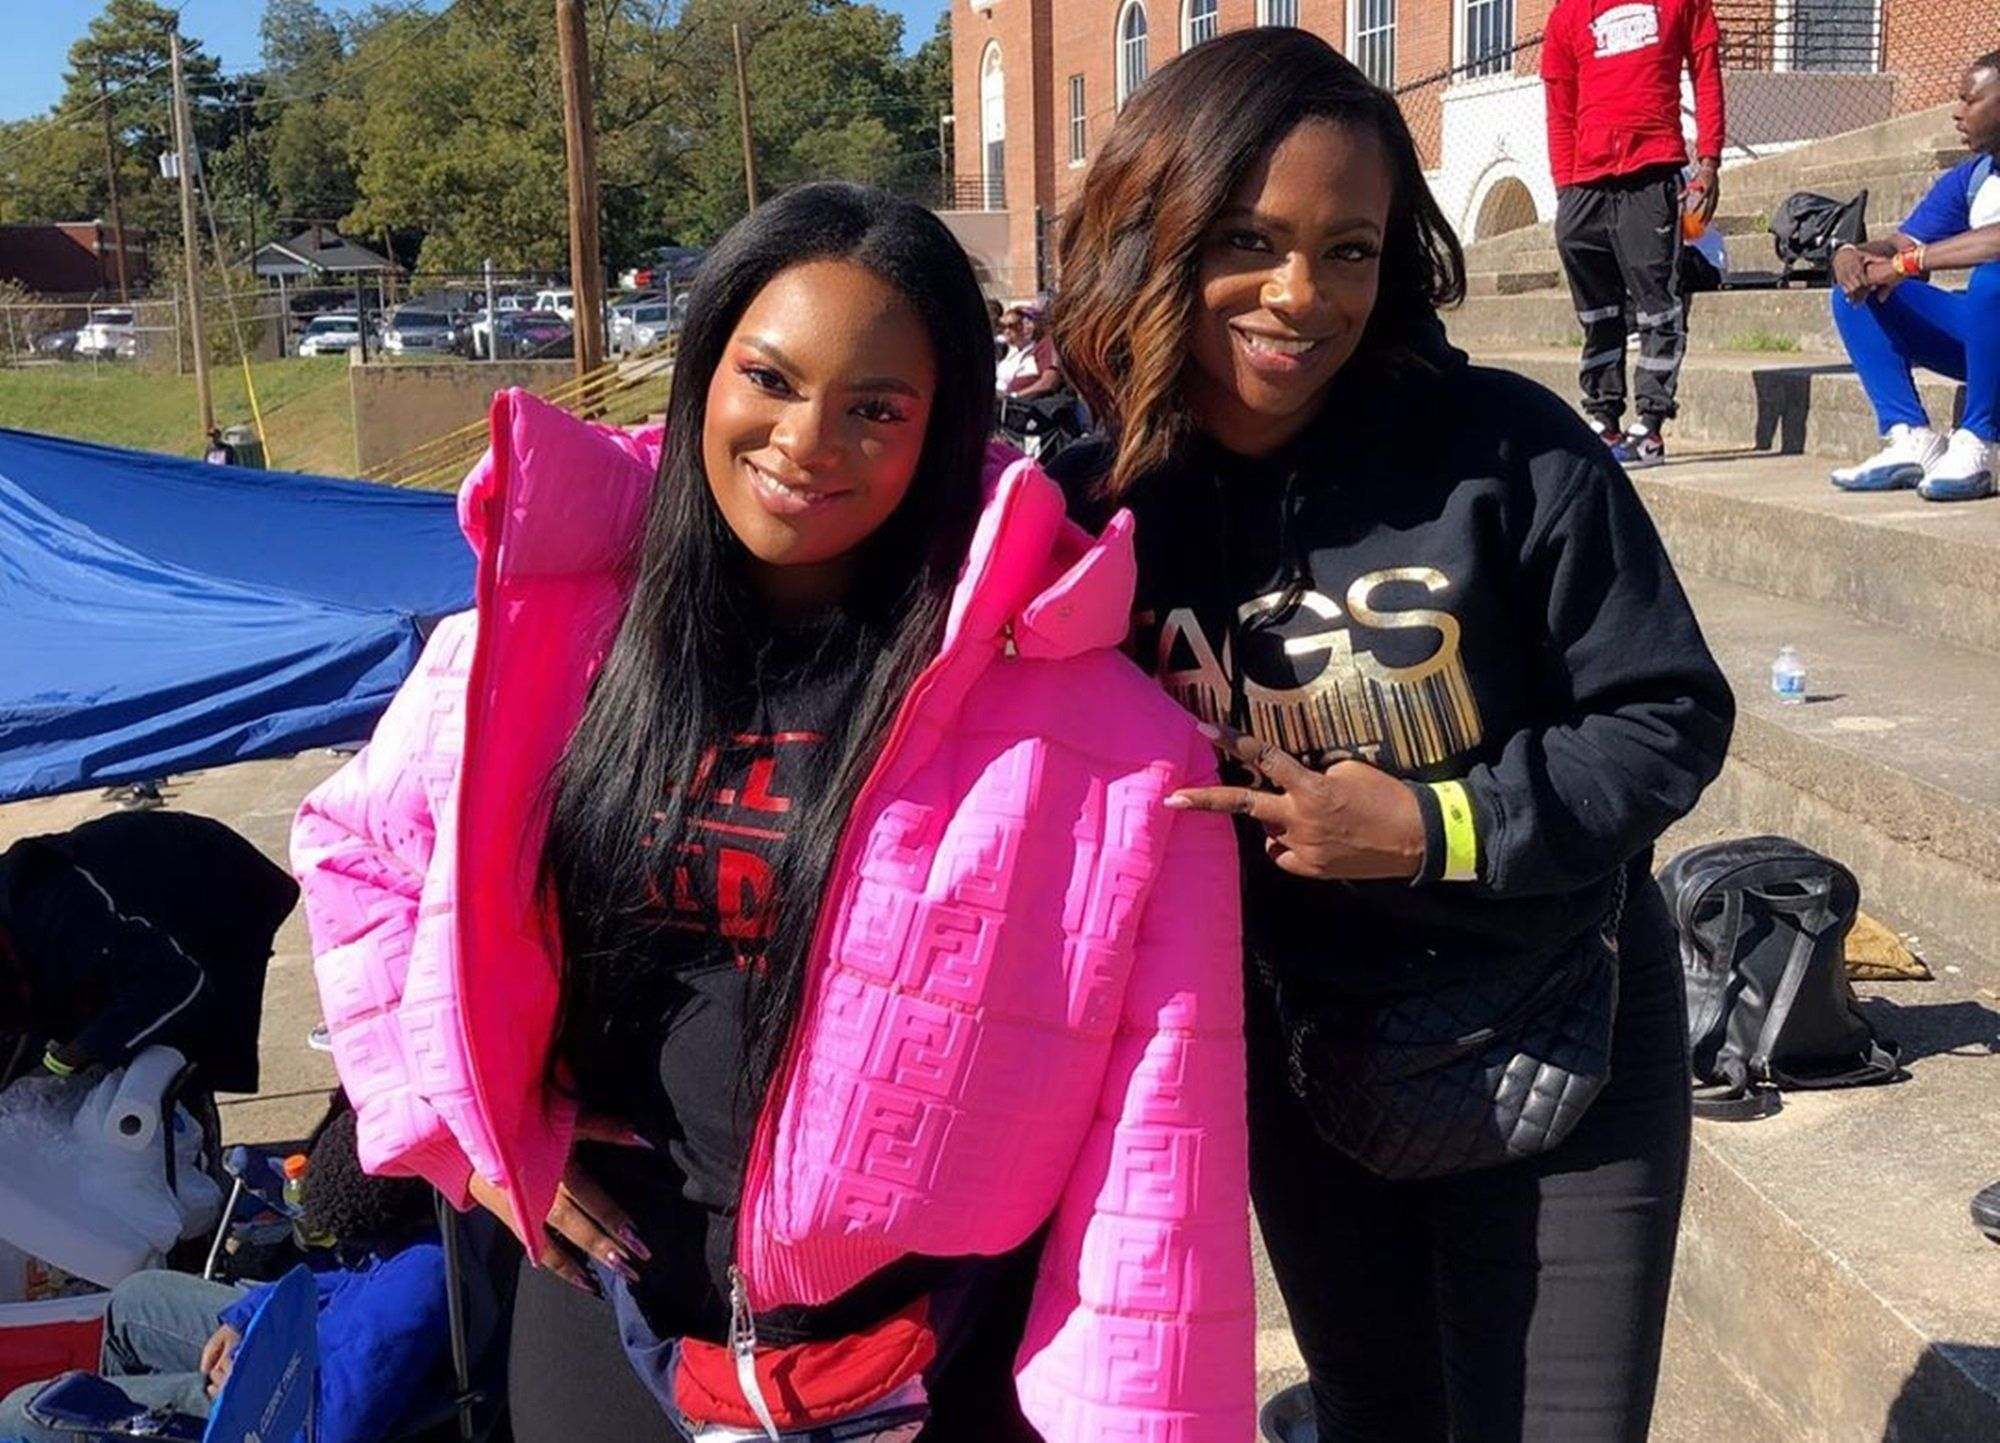 Kandi Burruss' Latest Fresh Look Mesmerizes Fans - See It Here